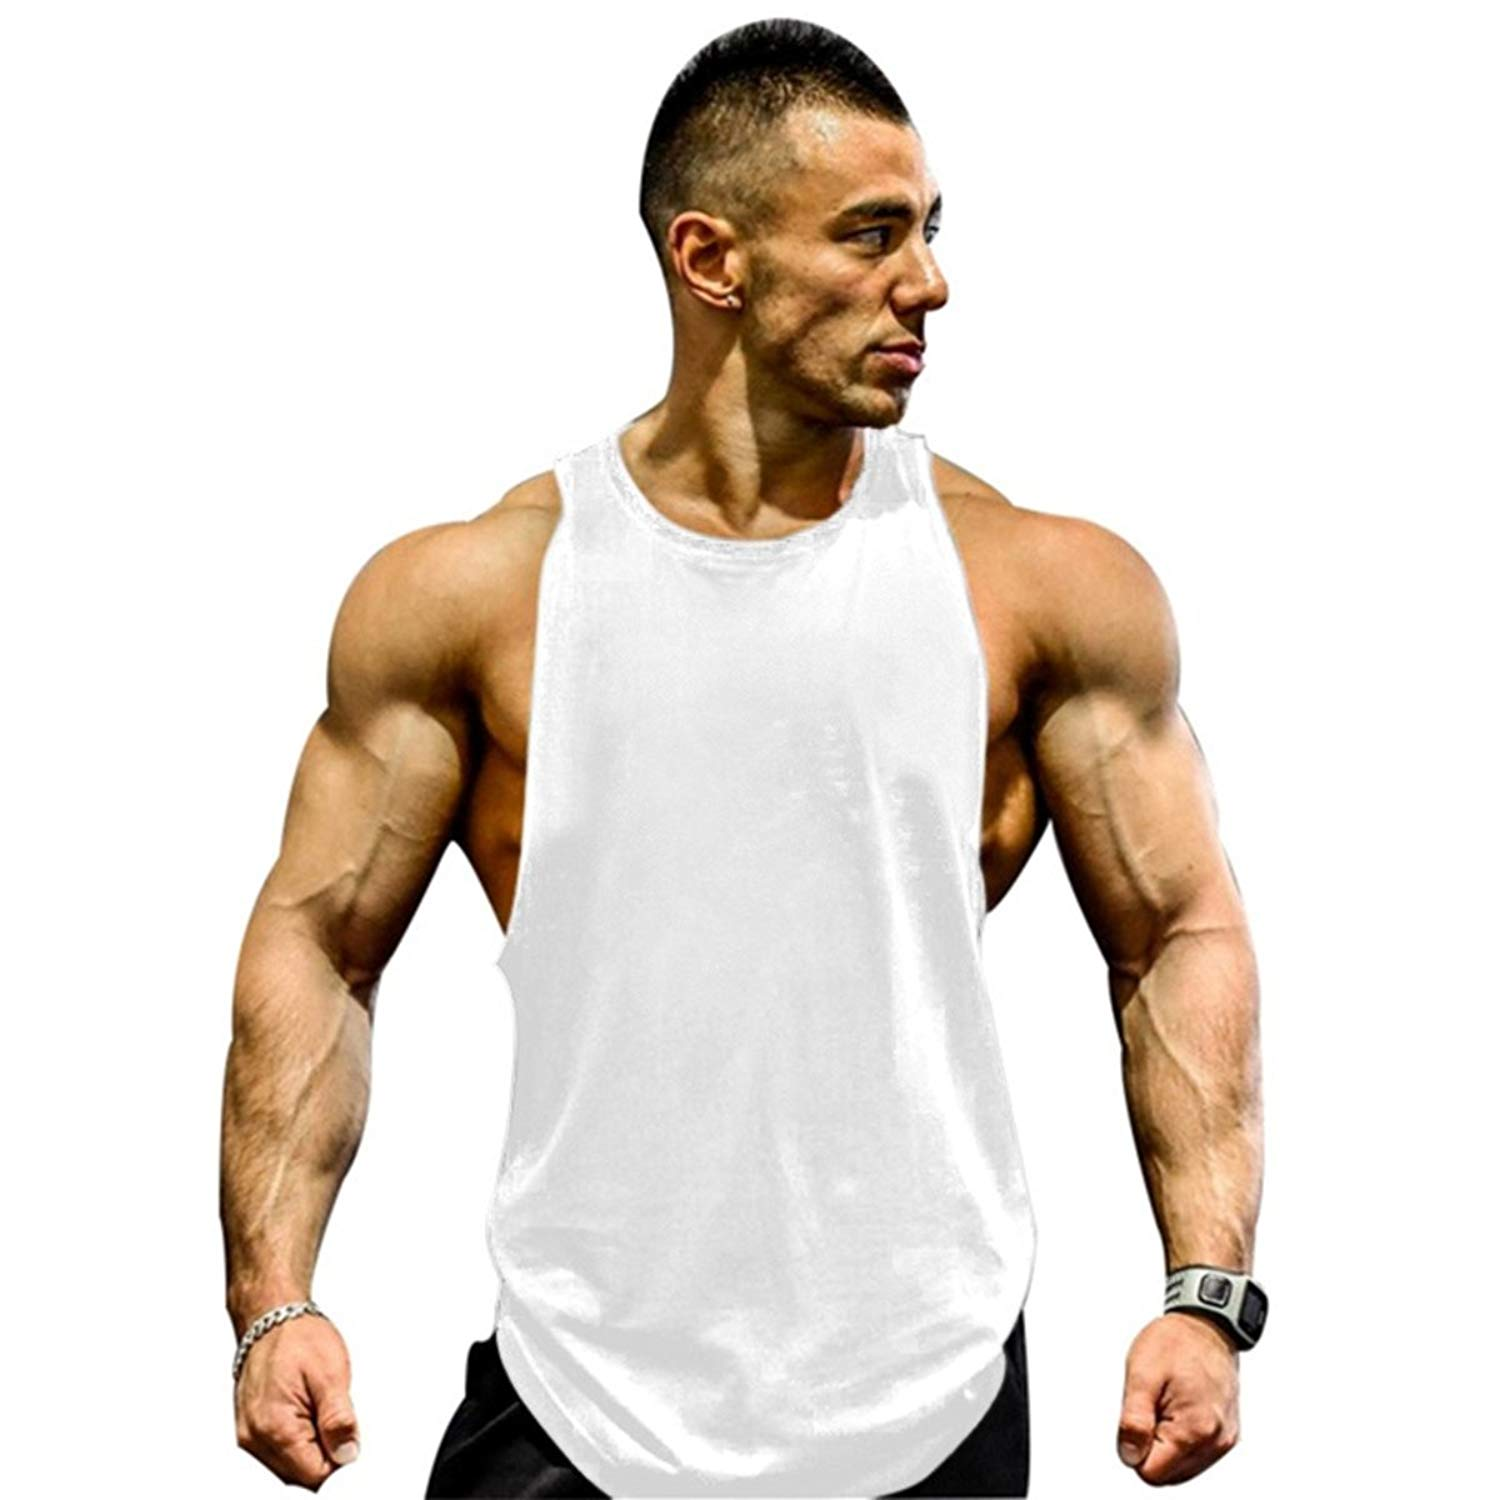 67fc1dab Muscle Killer Mens Gym Tank Tops Muscle Cut Stringer Bodybuilding Workout  Sleeveless Gym Shirts